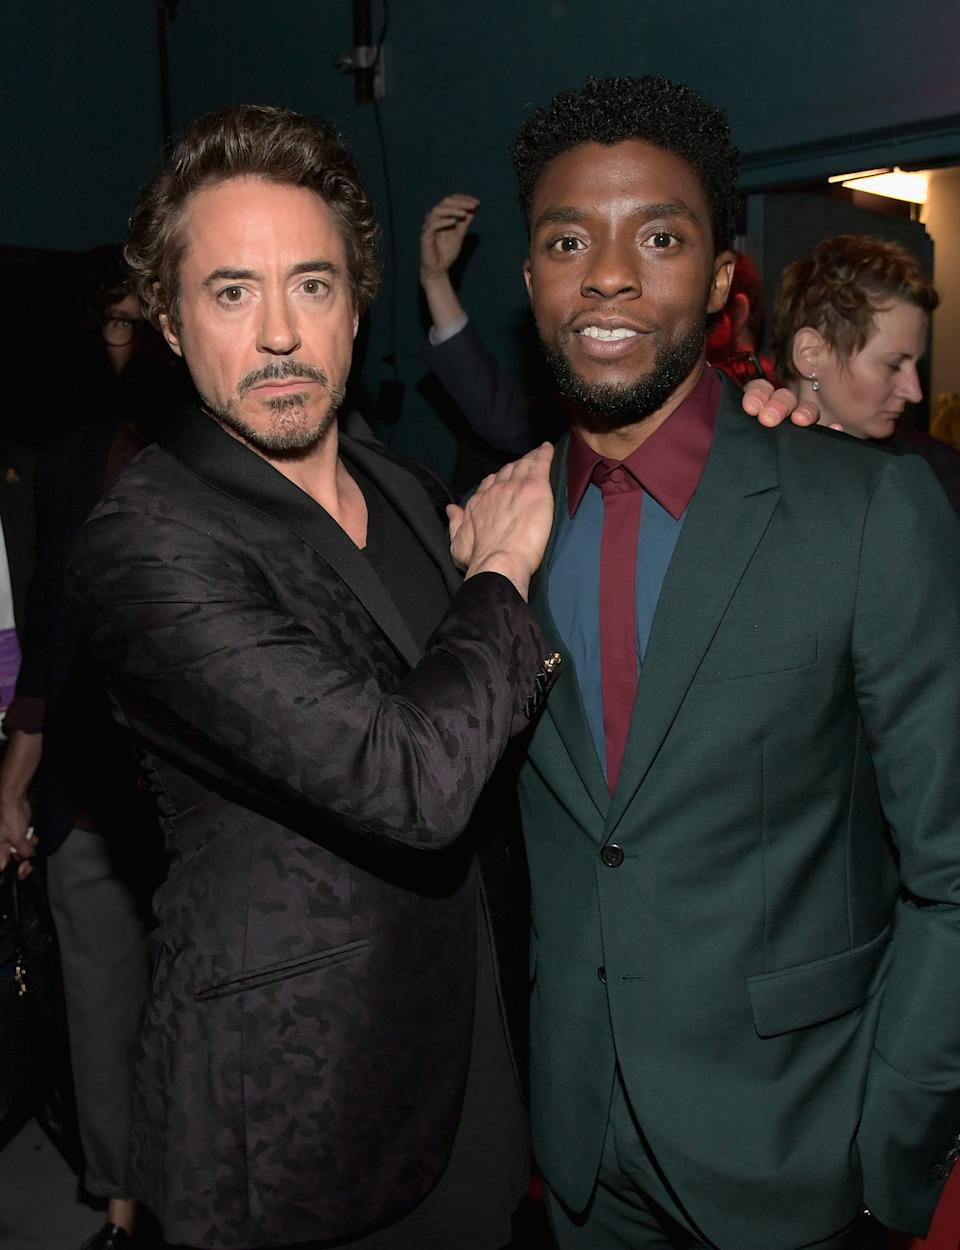 HOLLYWOOD, CA - APRIL 23:  Actors Robert Downey Jr. (L) and Chadwick Boseman attend the Los Angeles Global Premiere for Marvel Studios' Avengers: Infinity War on April 23, 2018 in Hollywood, California.  (Photo by Charley Gallay/Getty Images for Disney)